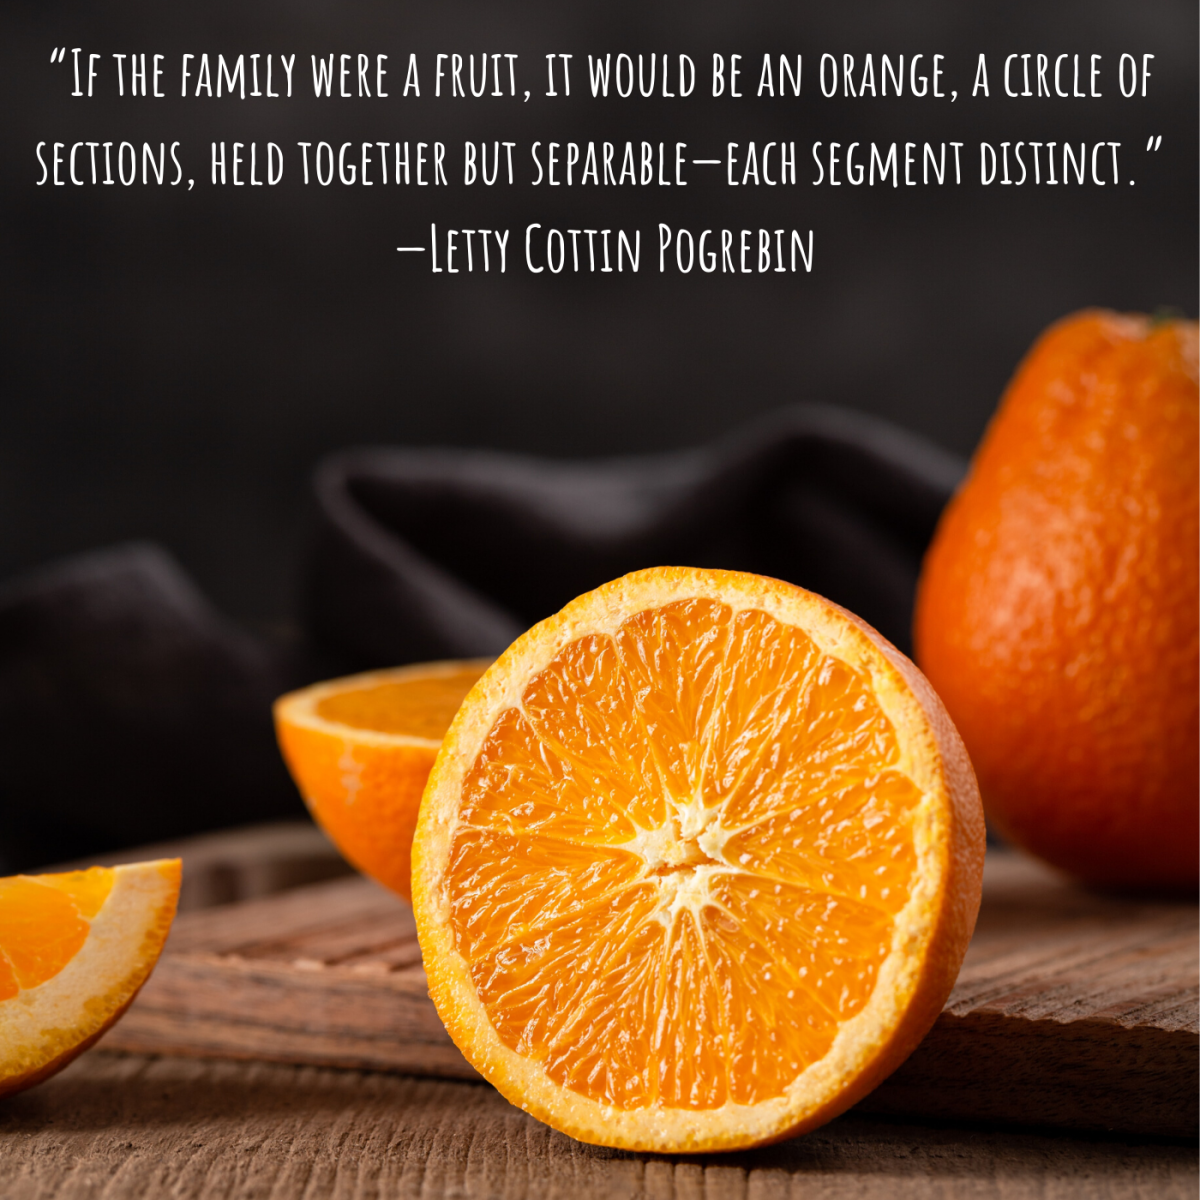 """""""If the family were a fruit, it would be an orange, a circle of sections, held together but separable—each segment distinct."""" —Letty Cottin Pogrebin"""